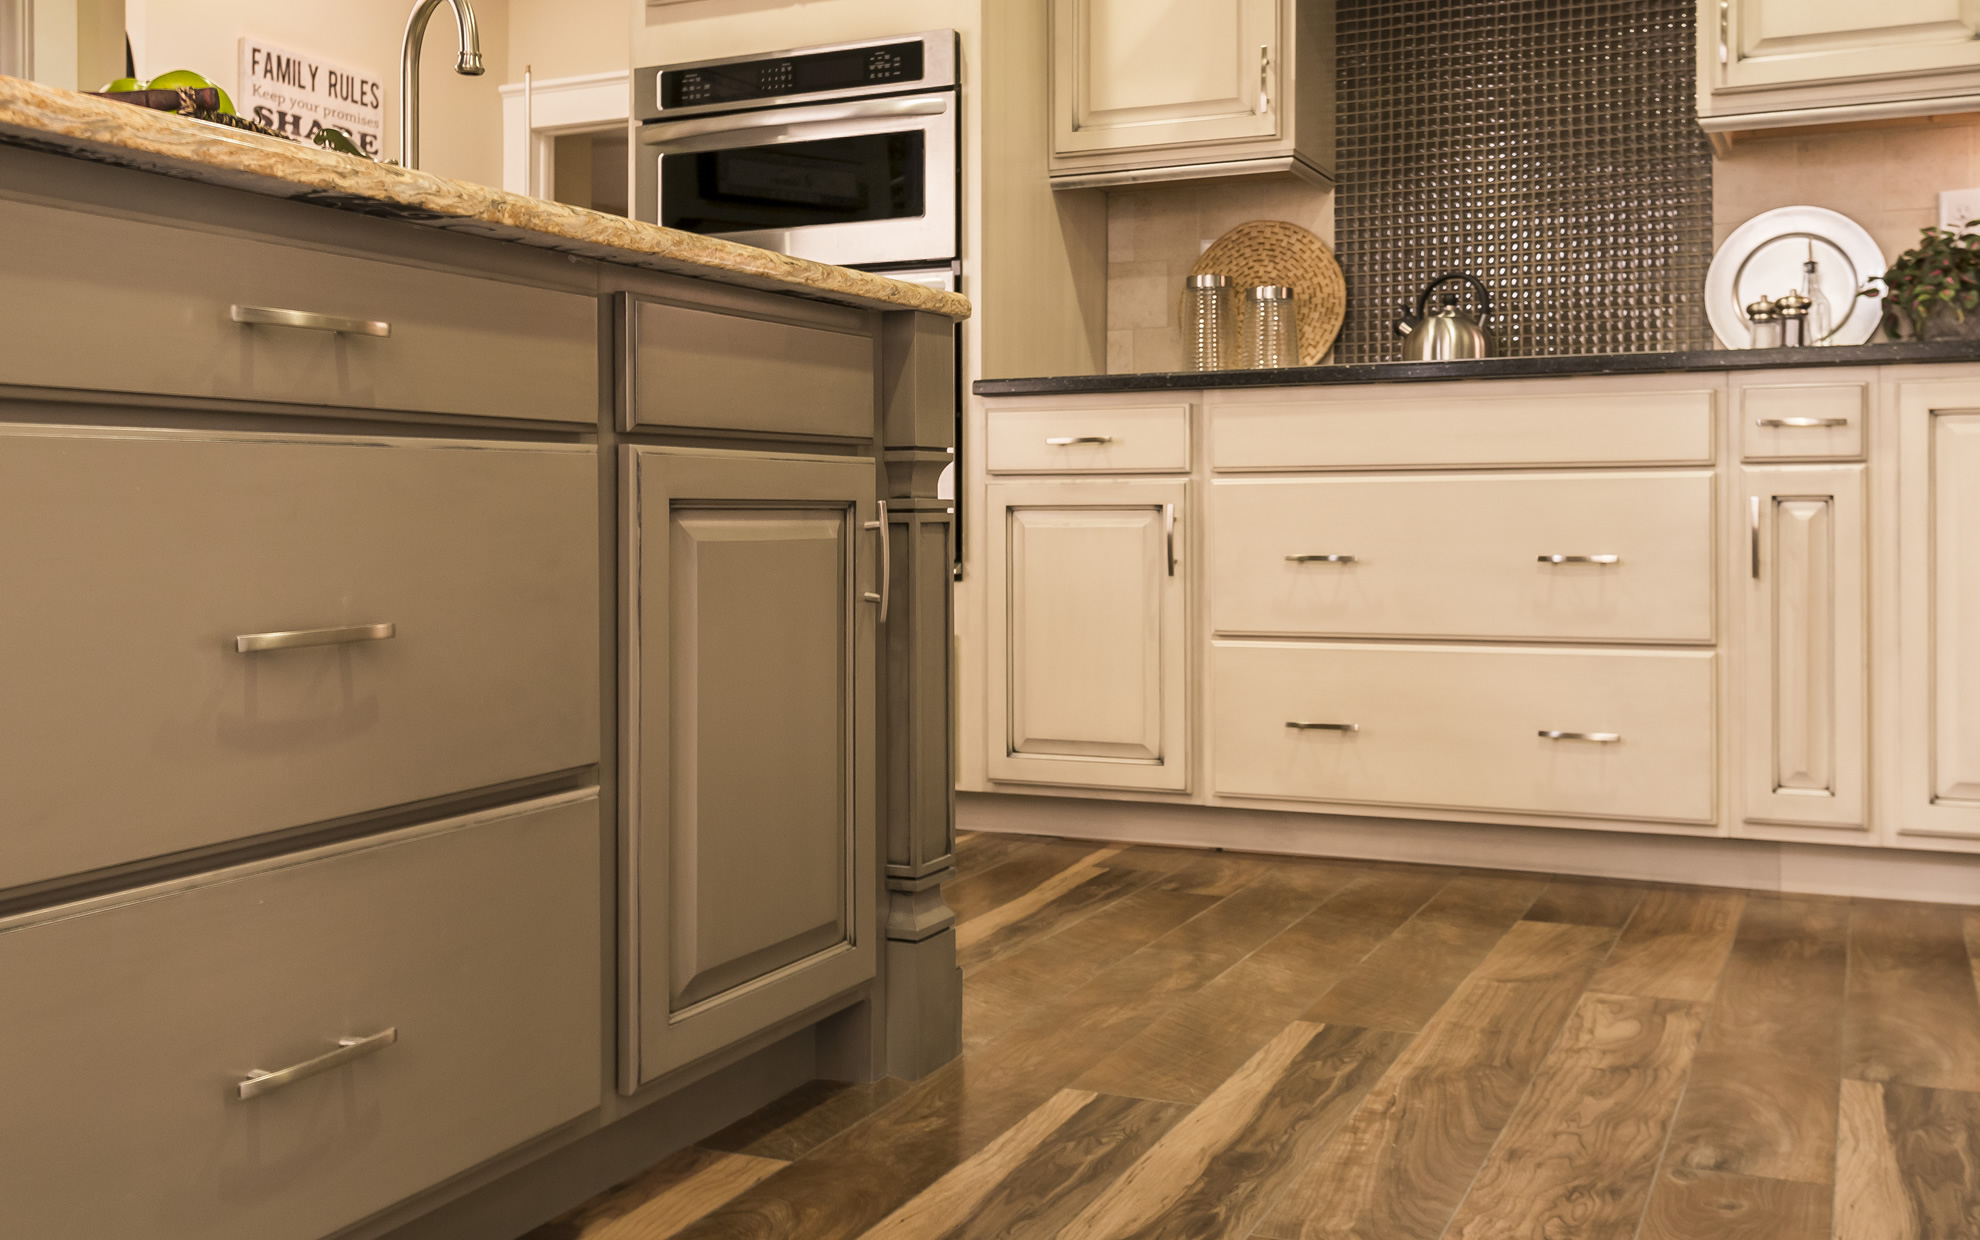 legacy kitchen cabinets shoes for work in hand crafted cabinetry made pennsylvania view our designer inspired colors